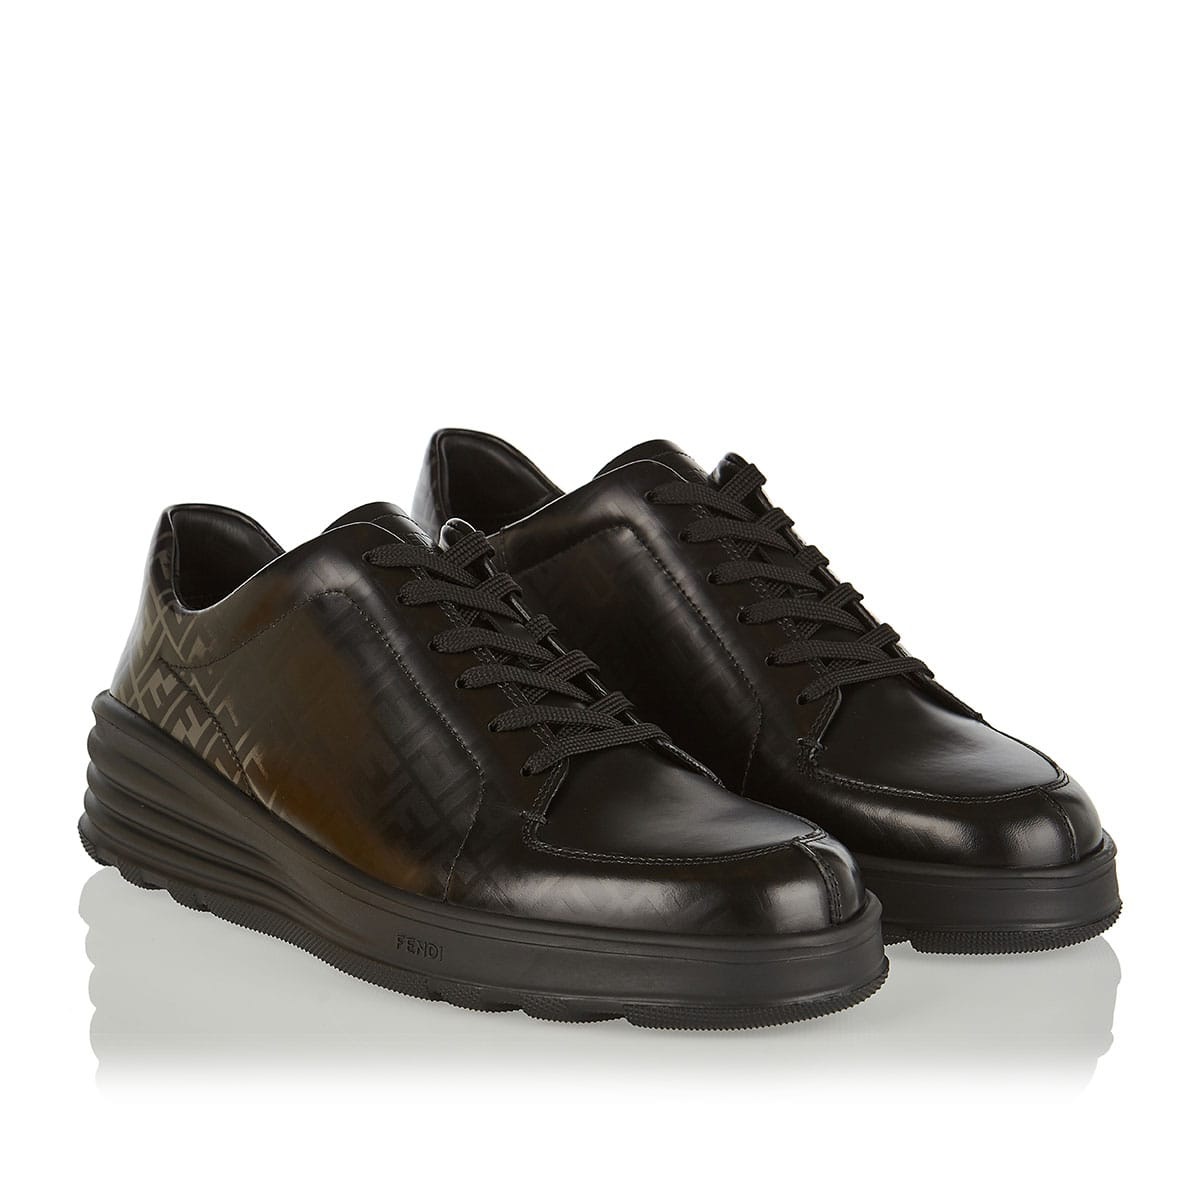 FF logo leather sneakers